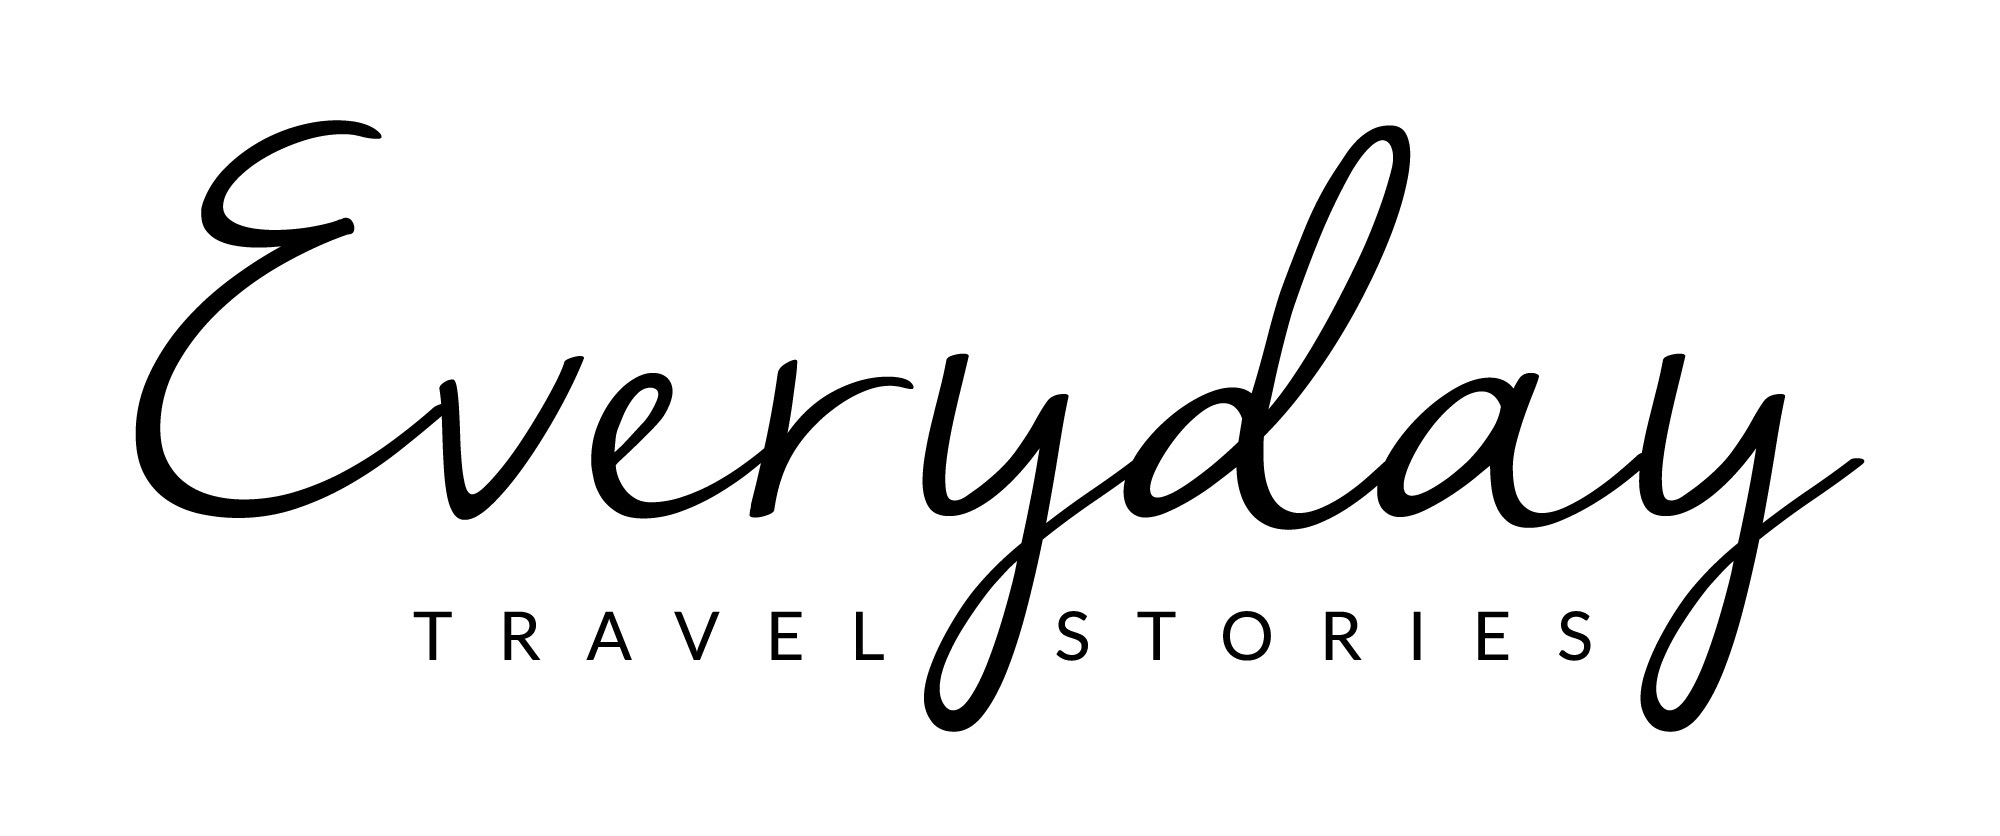 Everyday Travel Stories